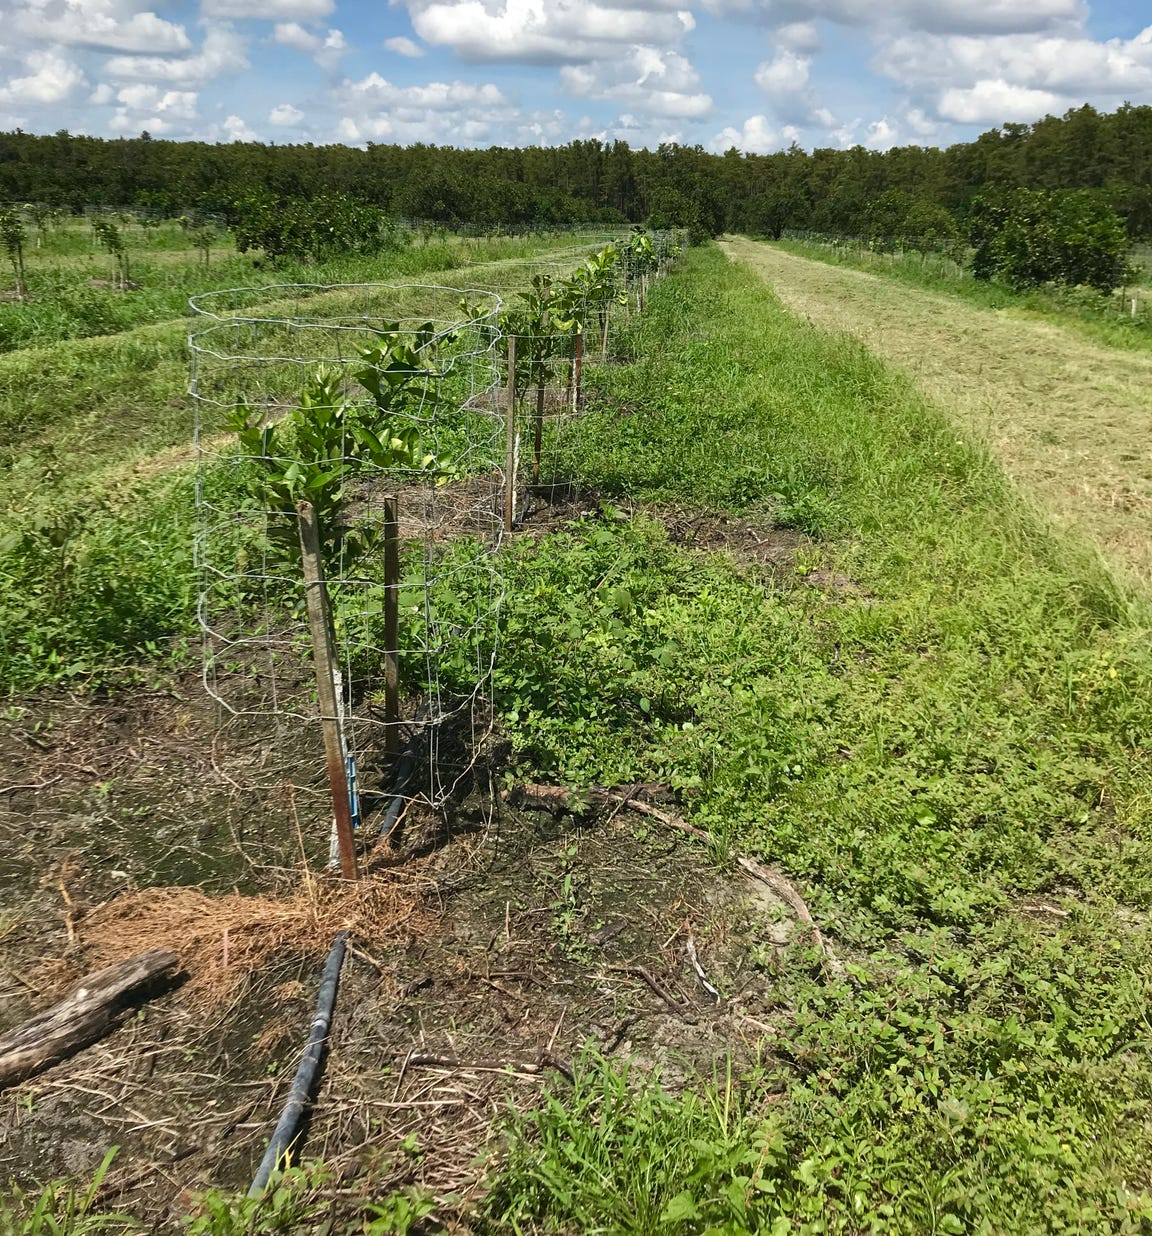 A row of young Valencia trees are protected by wire fencing so they aren't destroyed by deer. These 2-foot trees replaced more mature trees destroyed by Hurricane Irma at Bear Hammock Grove off Immokalee Road in eastern Collier County.